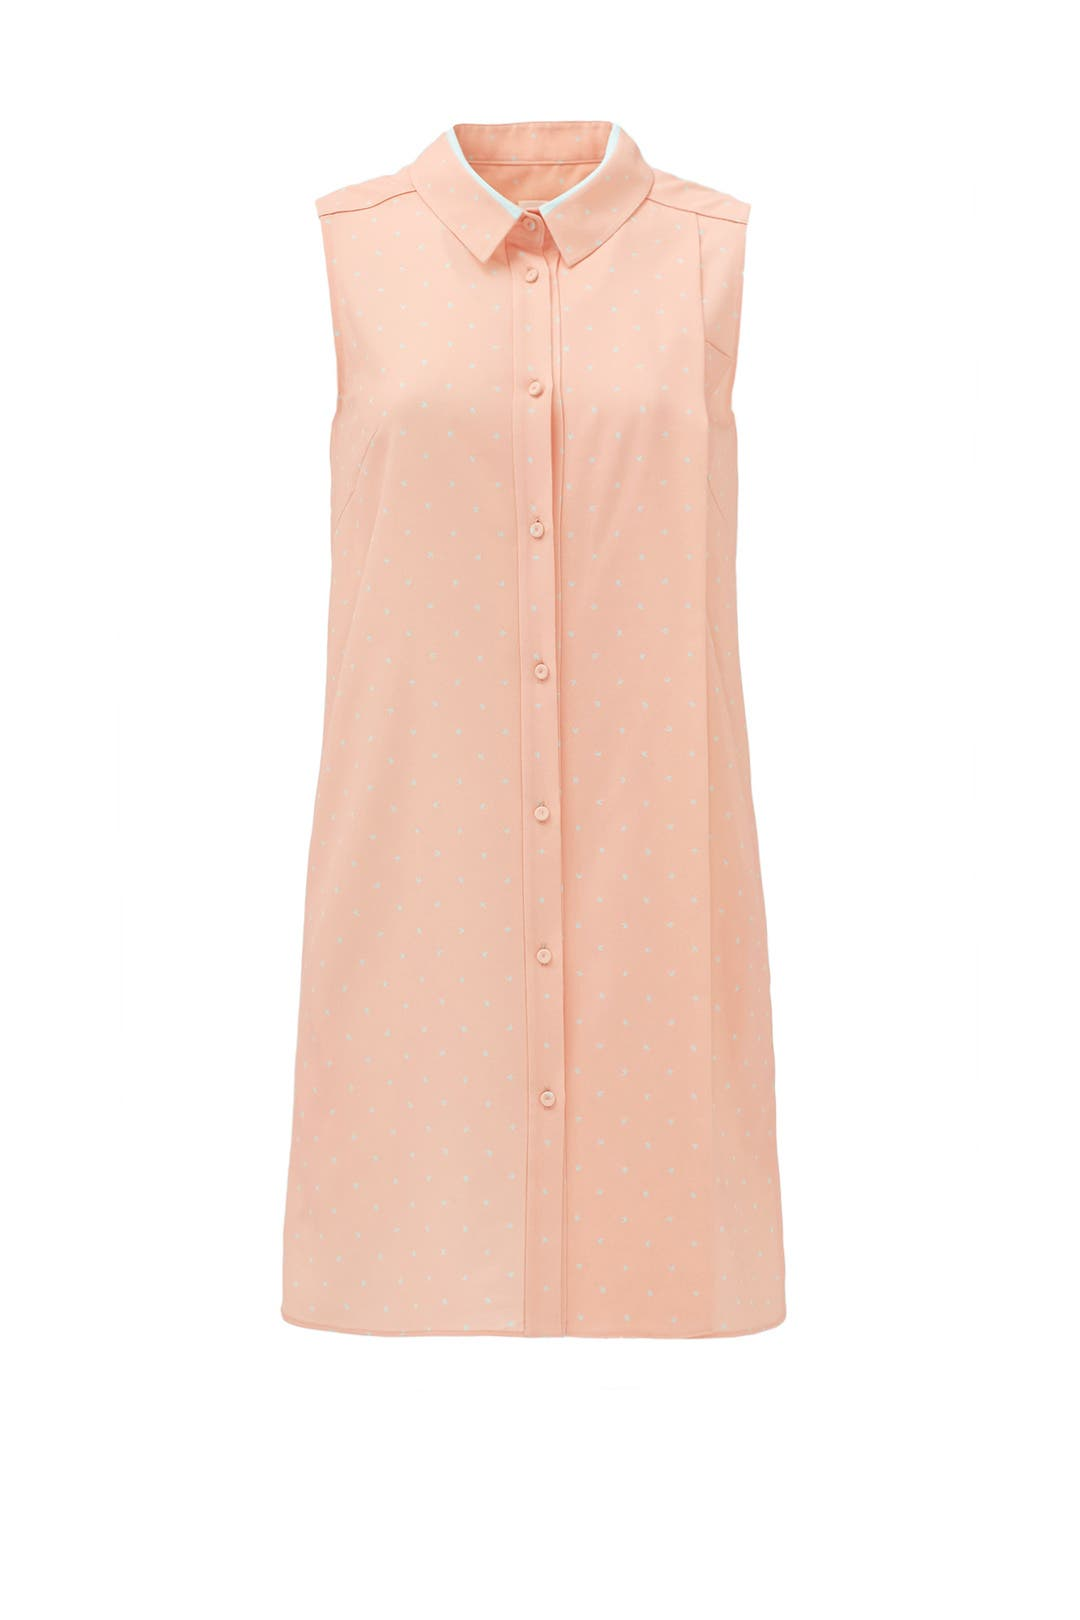 Peach Nectar Shirtdress by 1 by O2nd